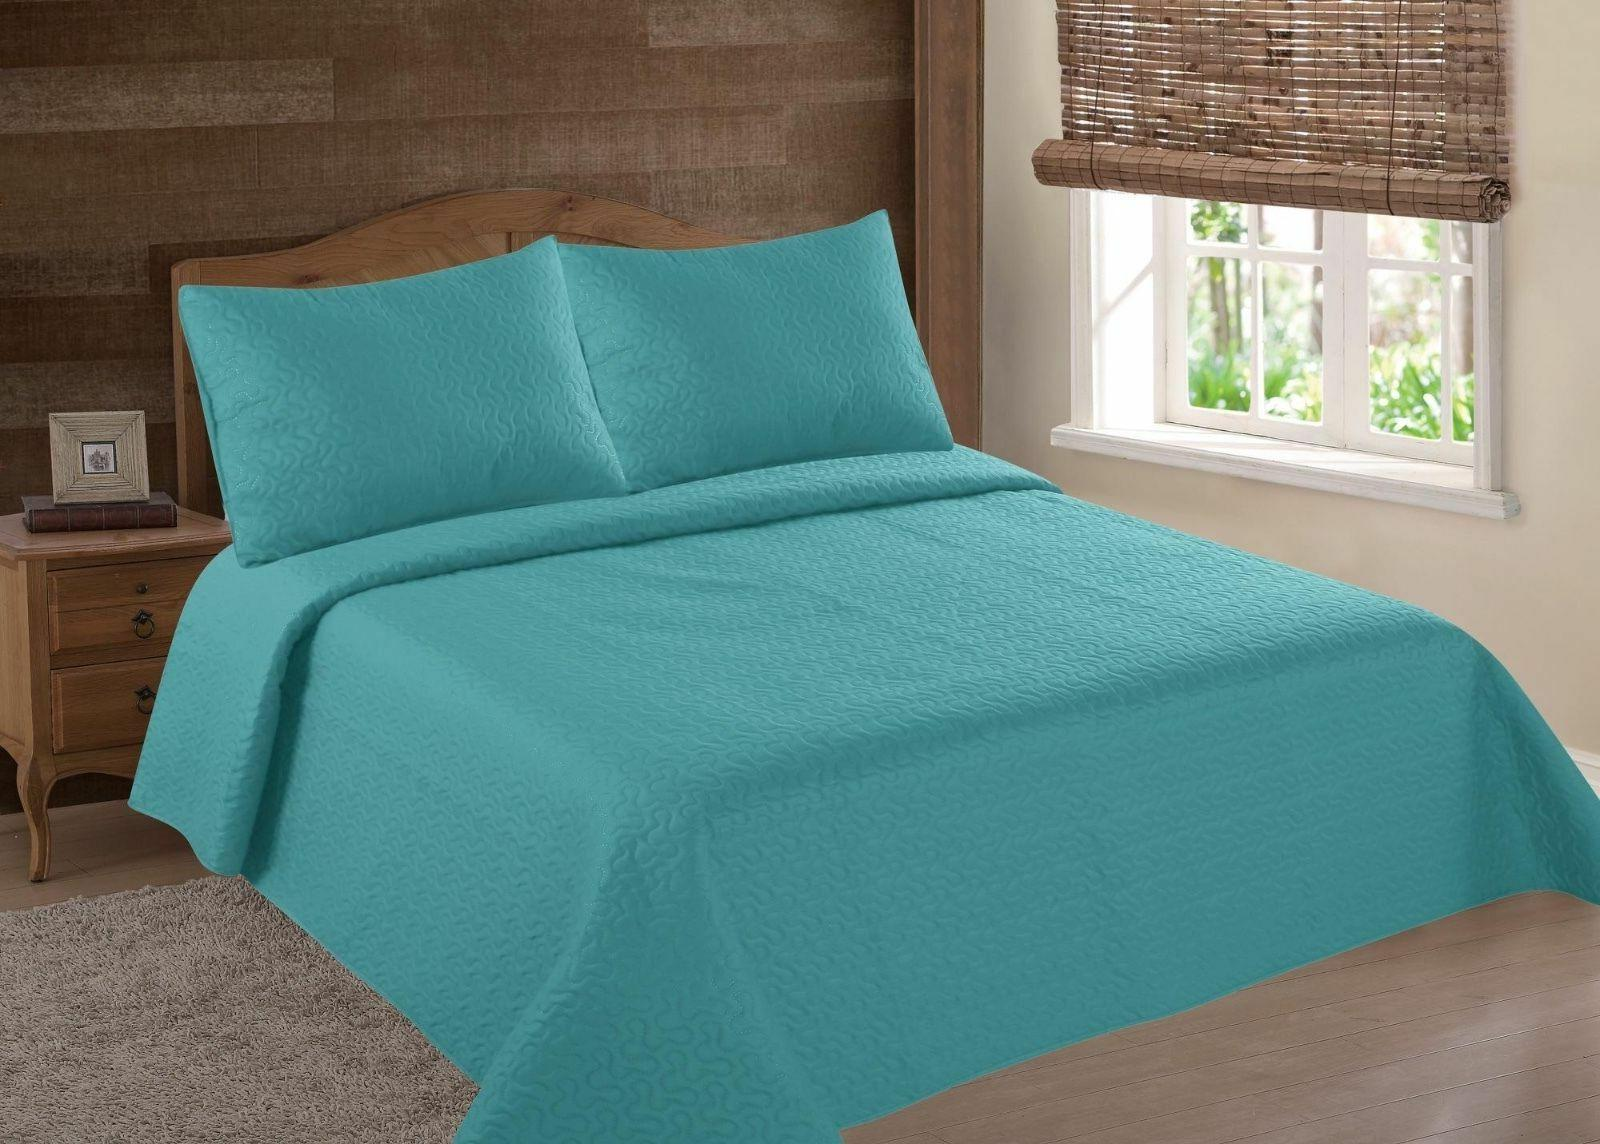 midwest turquoise nena solid quilt bedding bedspread